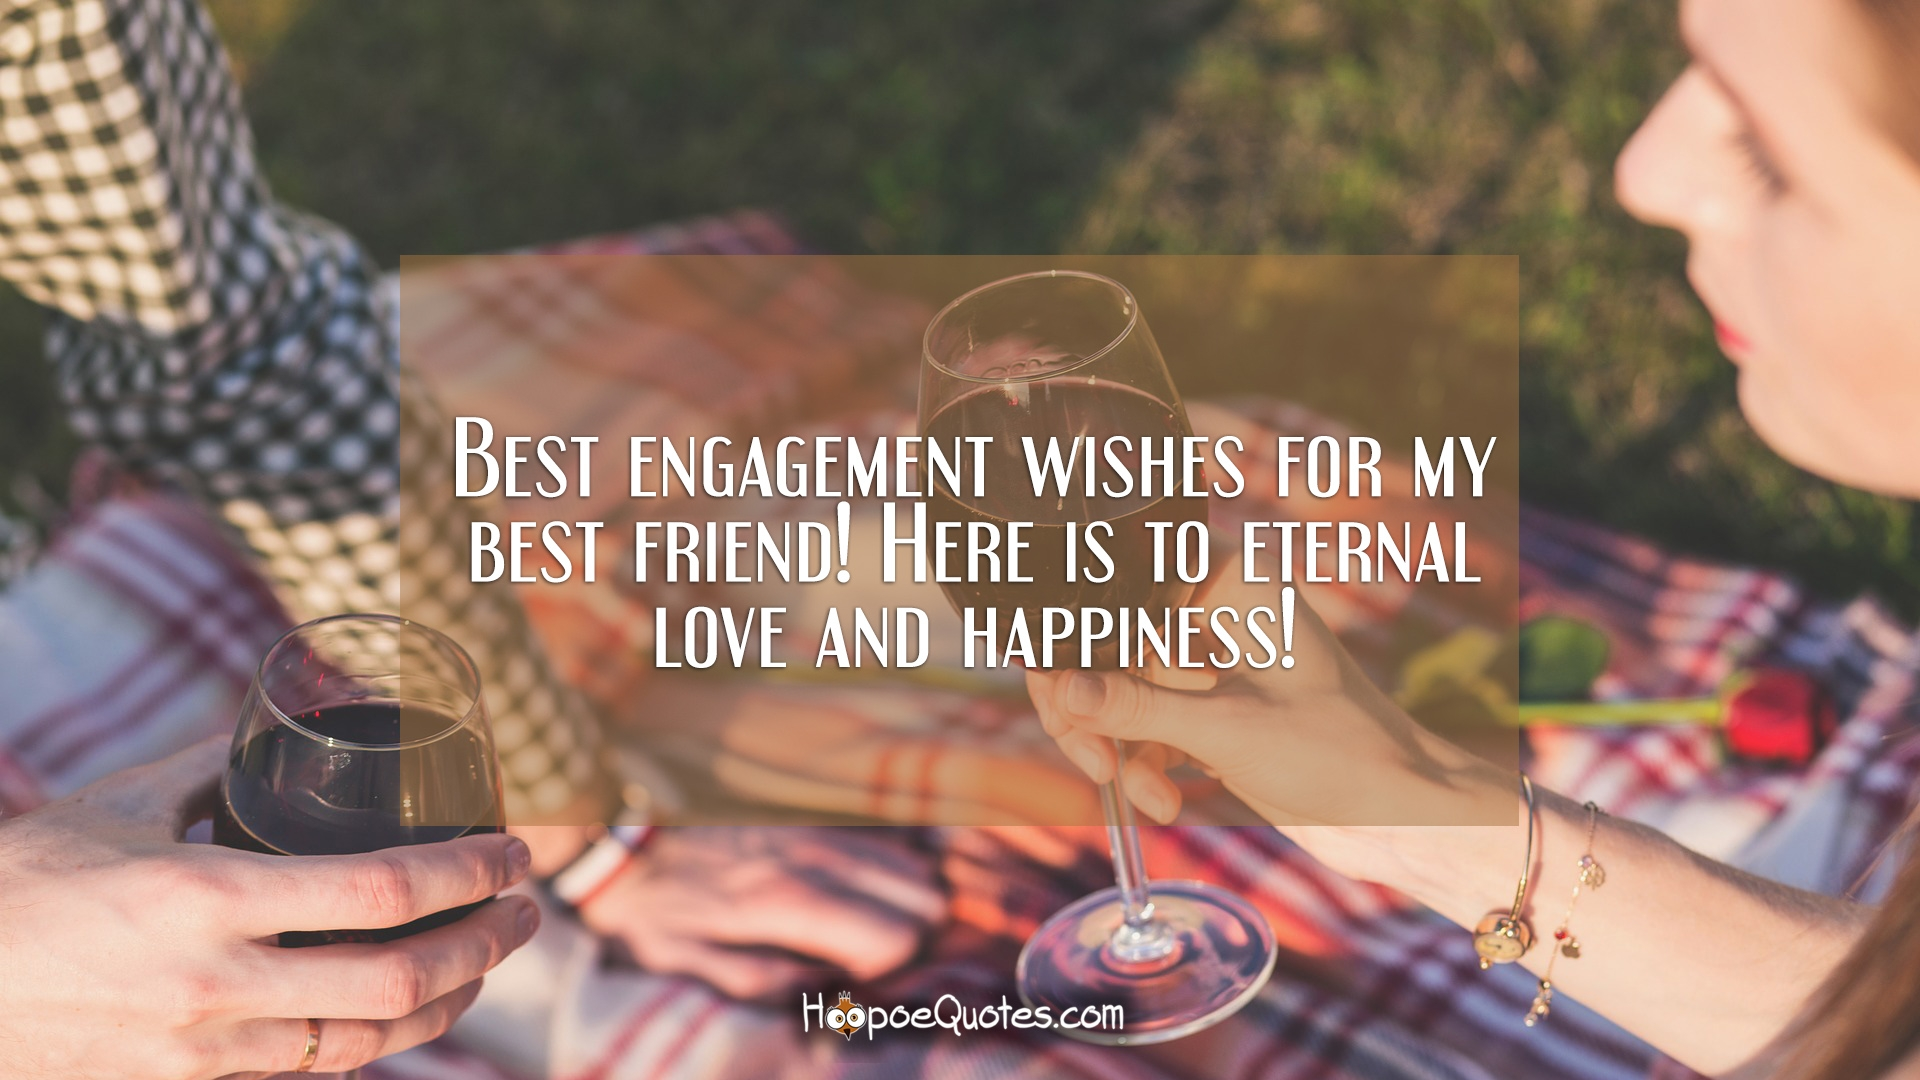 Best Engagement Wishes For My Best Friend Here Is To Eternal Love And Happiness Hoopoequotes